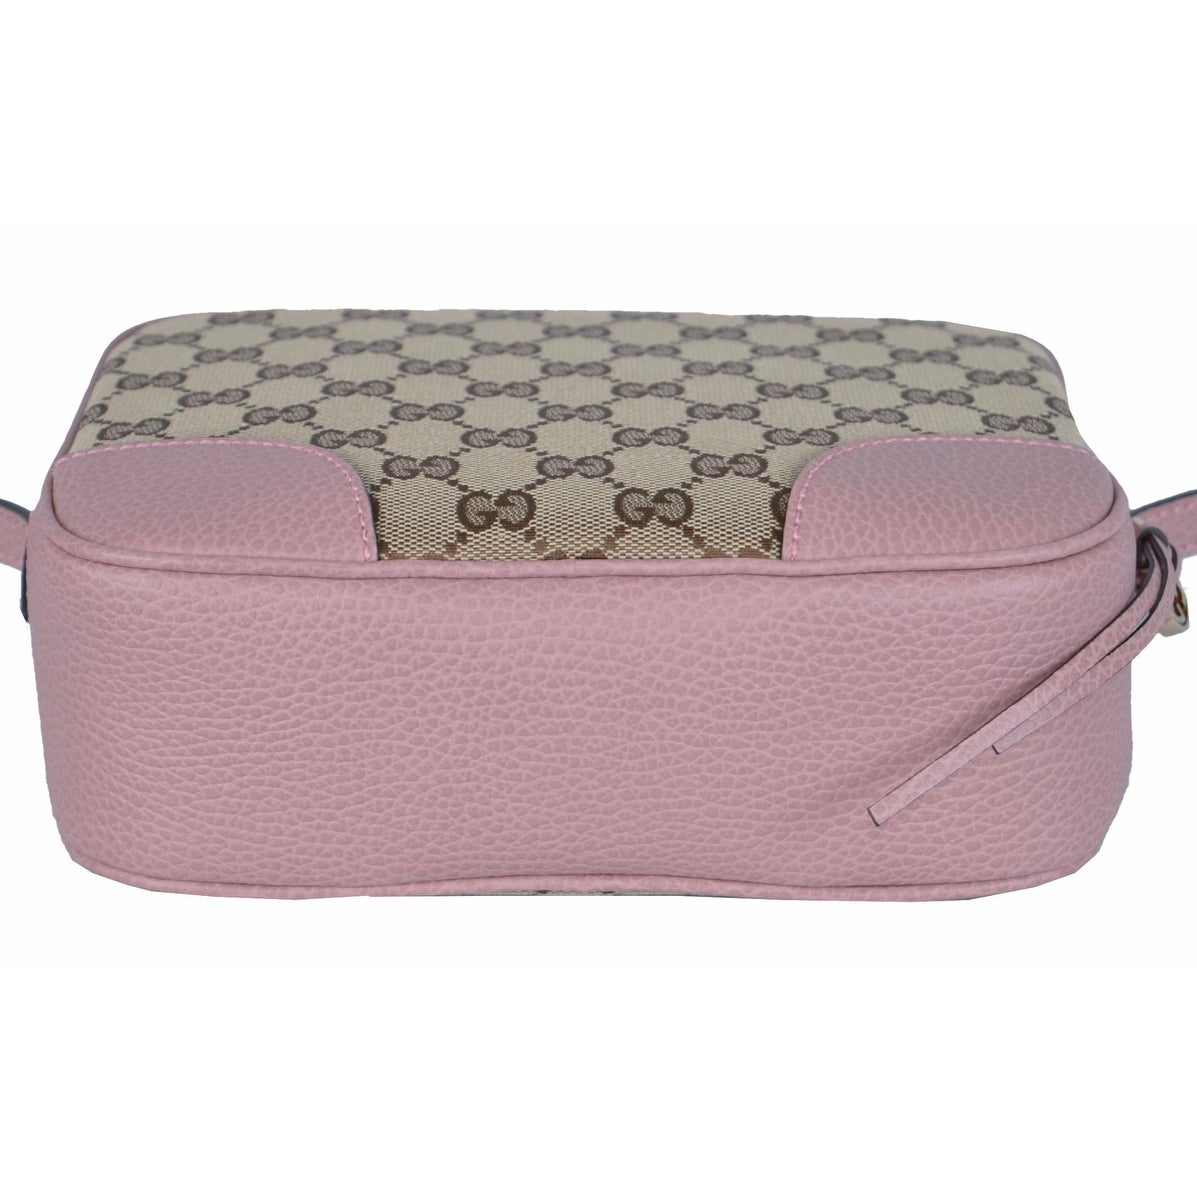 fe431872346 Shop Gucci 449413 Beige Pink Canvas Leather GG Guccissima Bree Crossbody  Purse - Beige Pink - 8.5